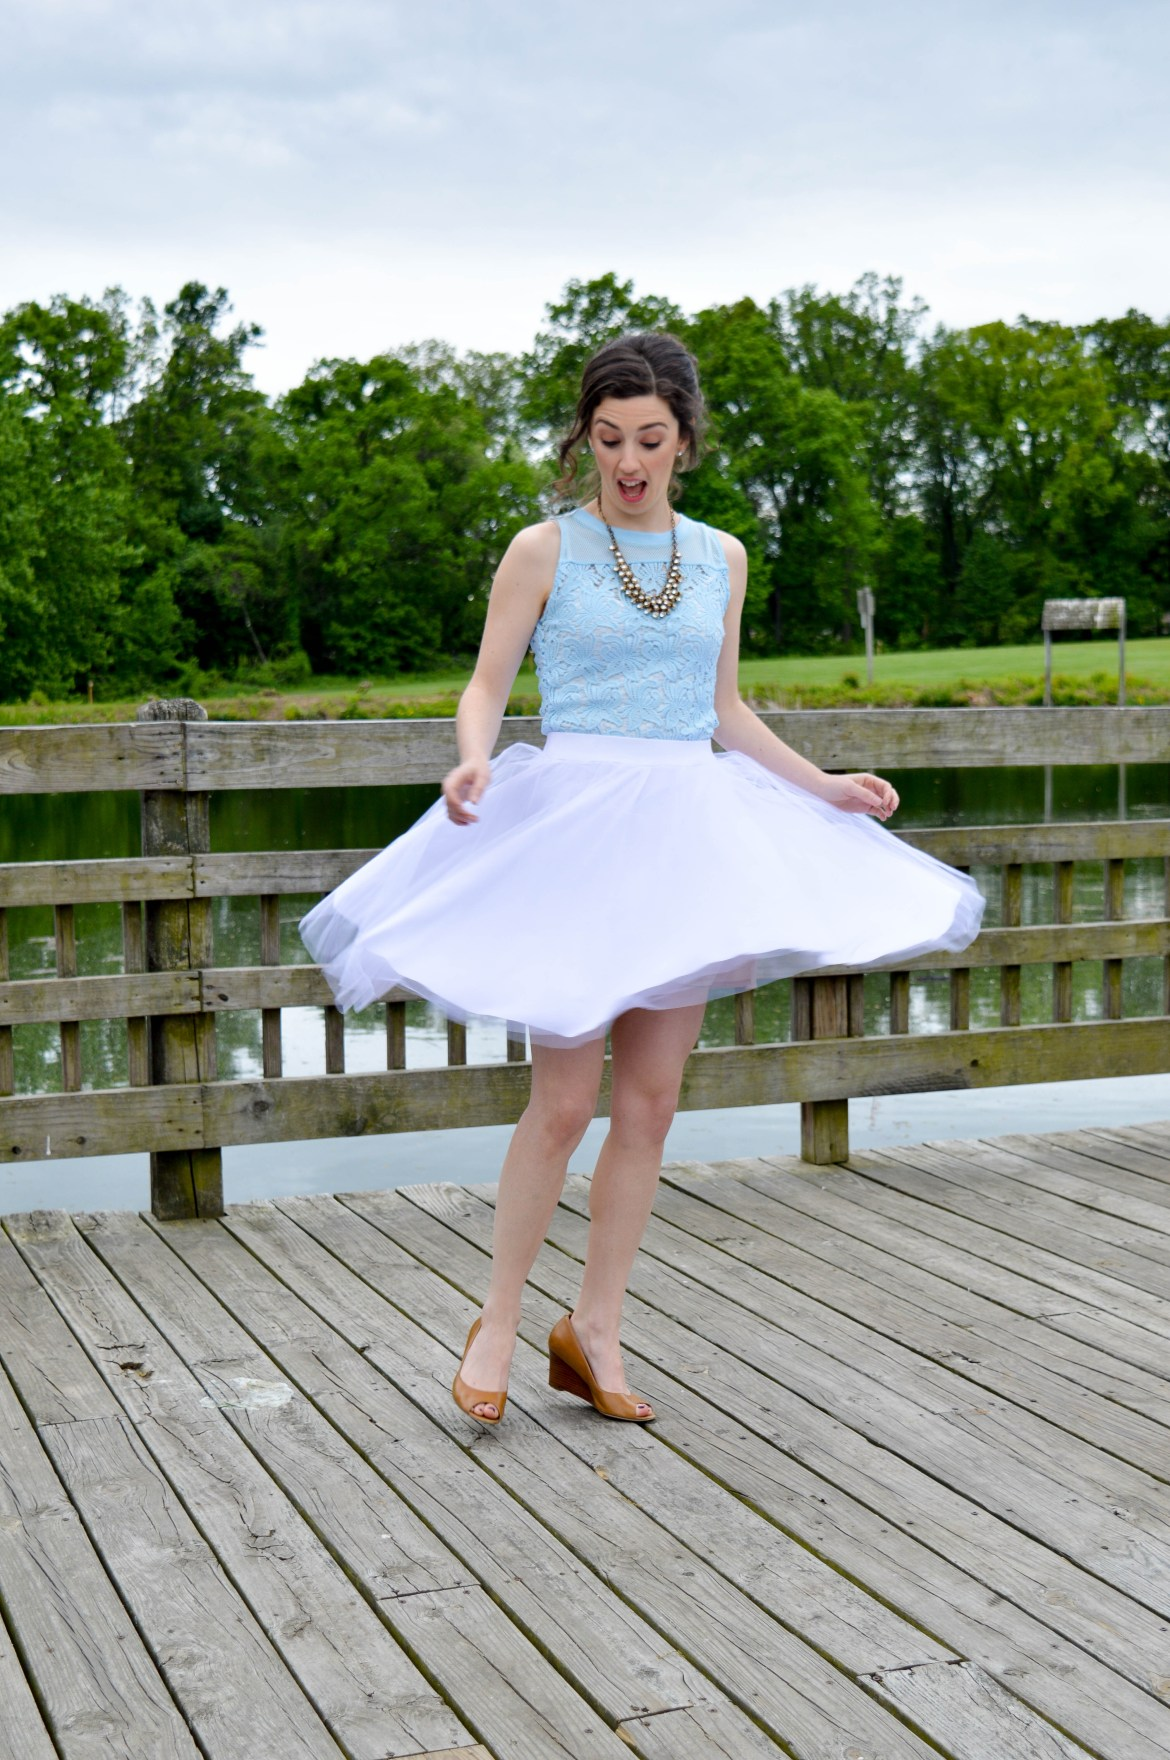 Tulle skirt outtake | Hunting for Pink Flamingos